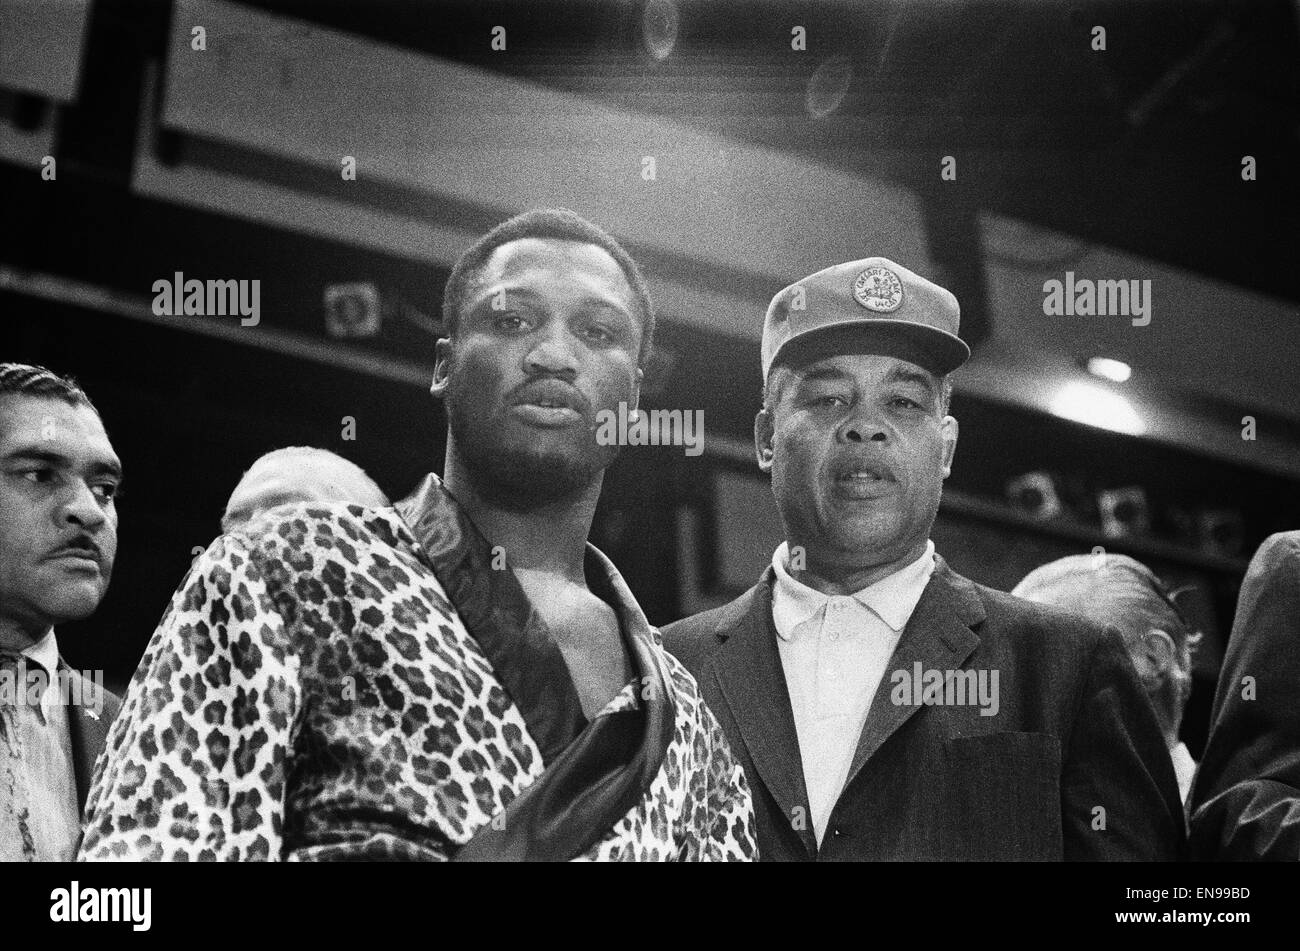 World Champion Joe Frazier (left) seen here with former World Champion Joe Louis, at the pre fight medical for Joe - Stock Image